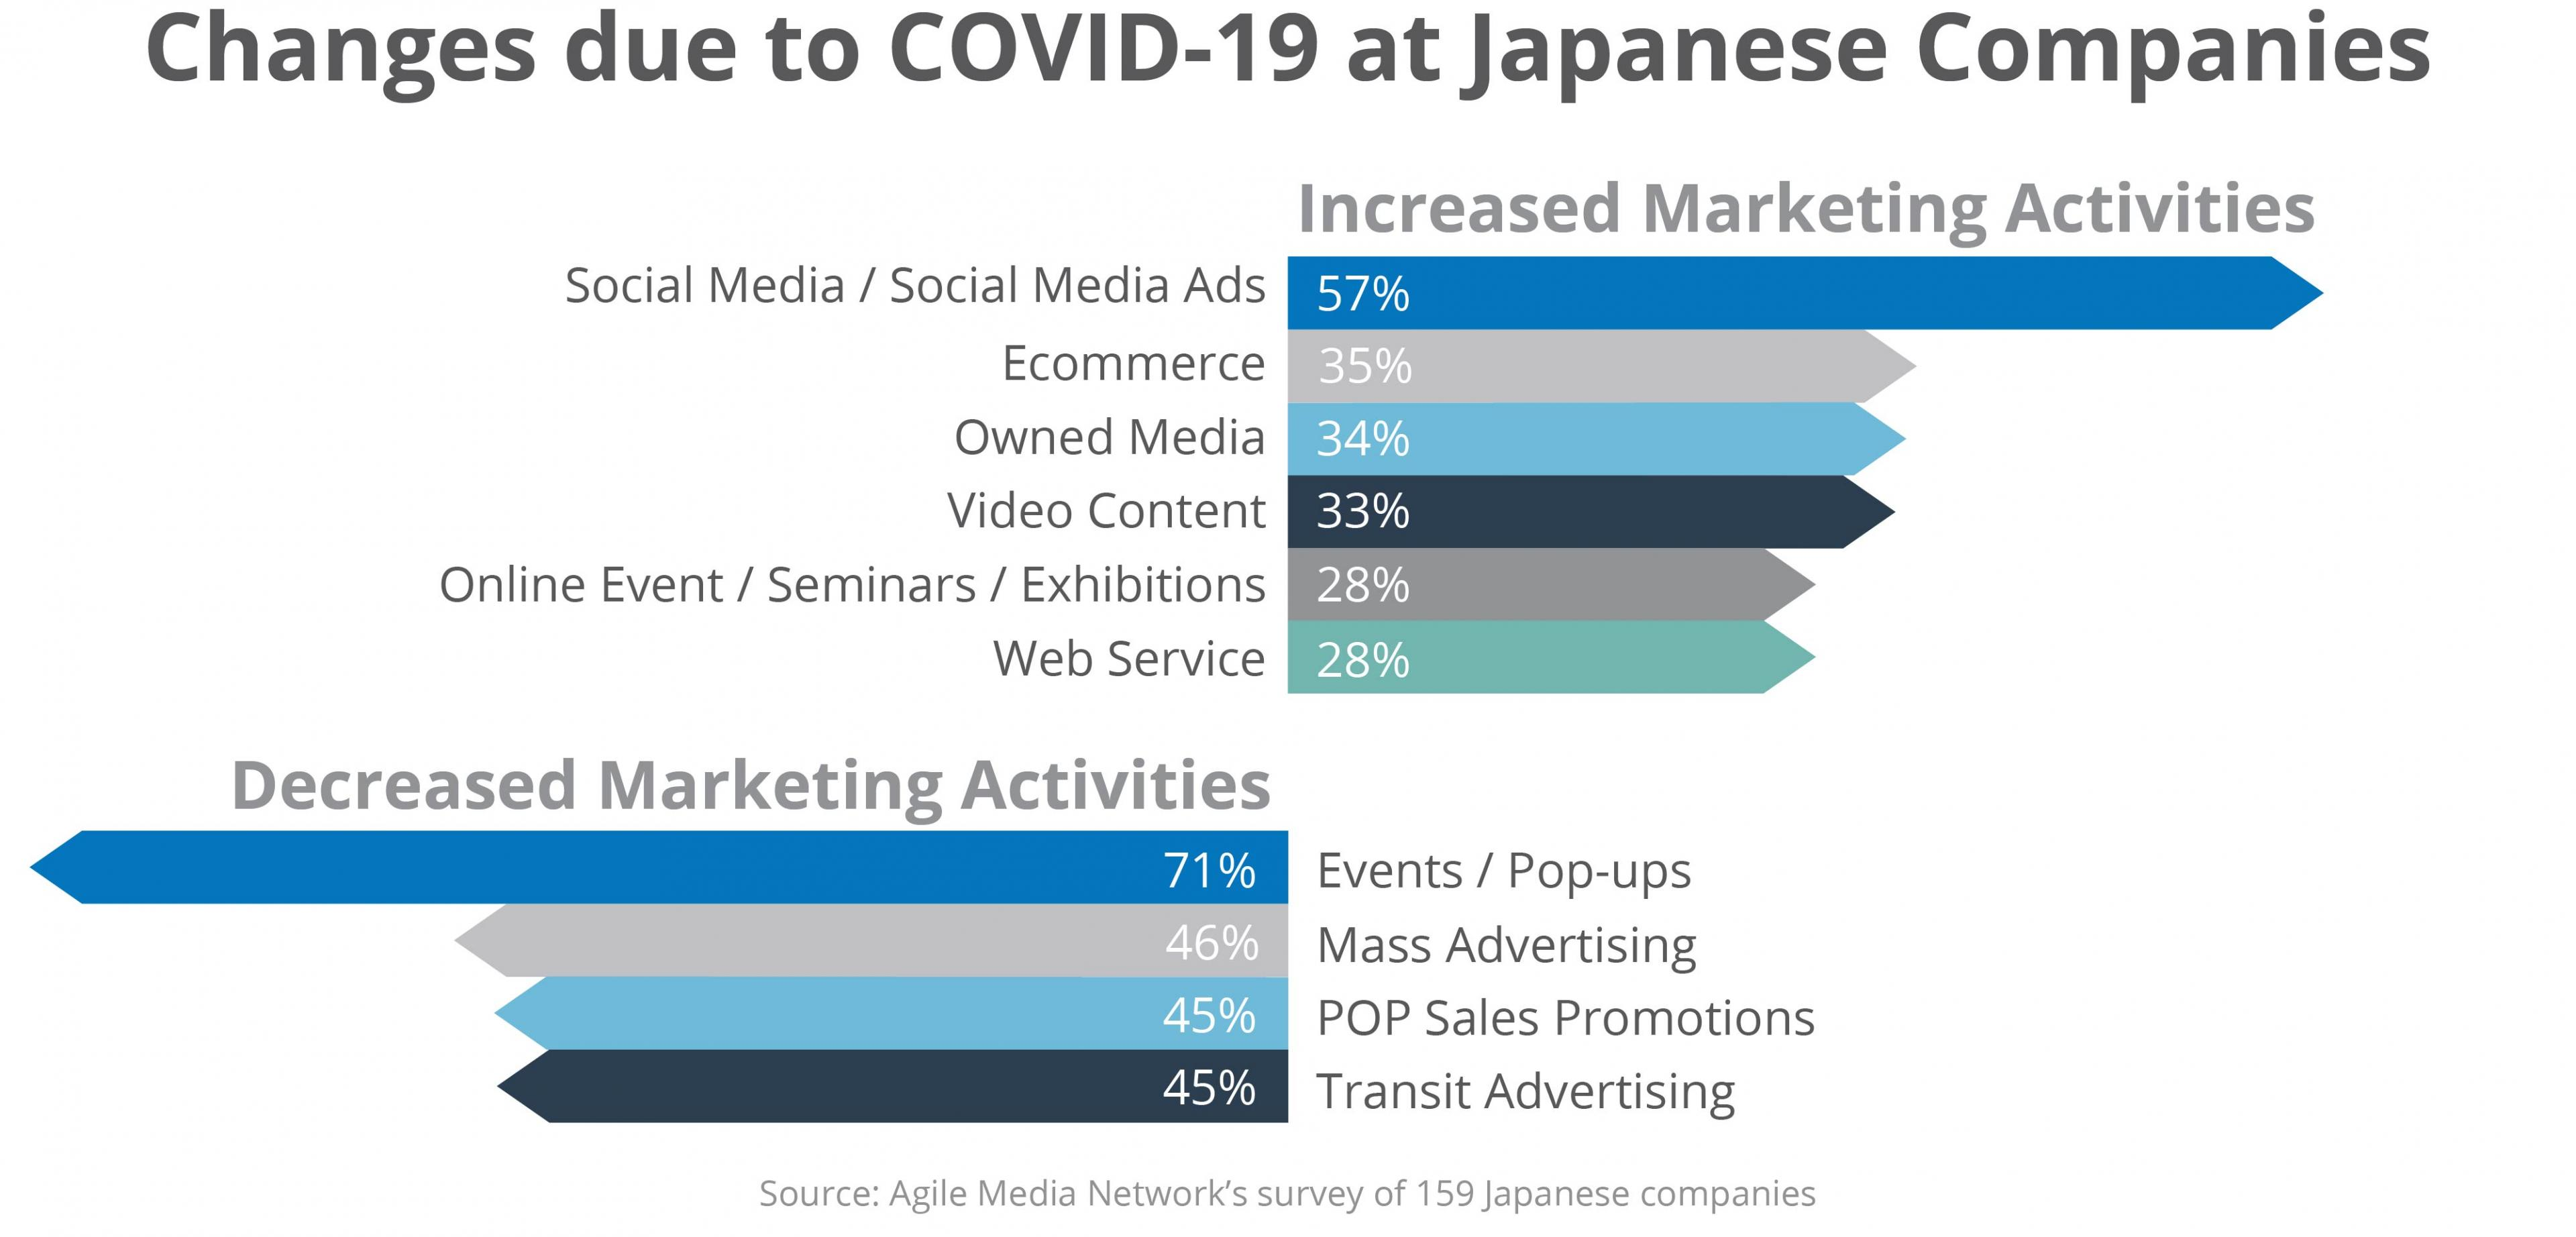 Changes in marketing activities at Japanese companies due to COVID-19 | Digital Marketing For Asia